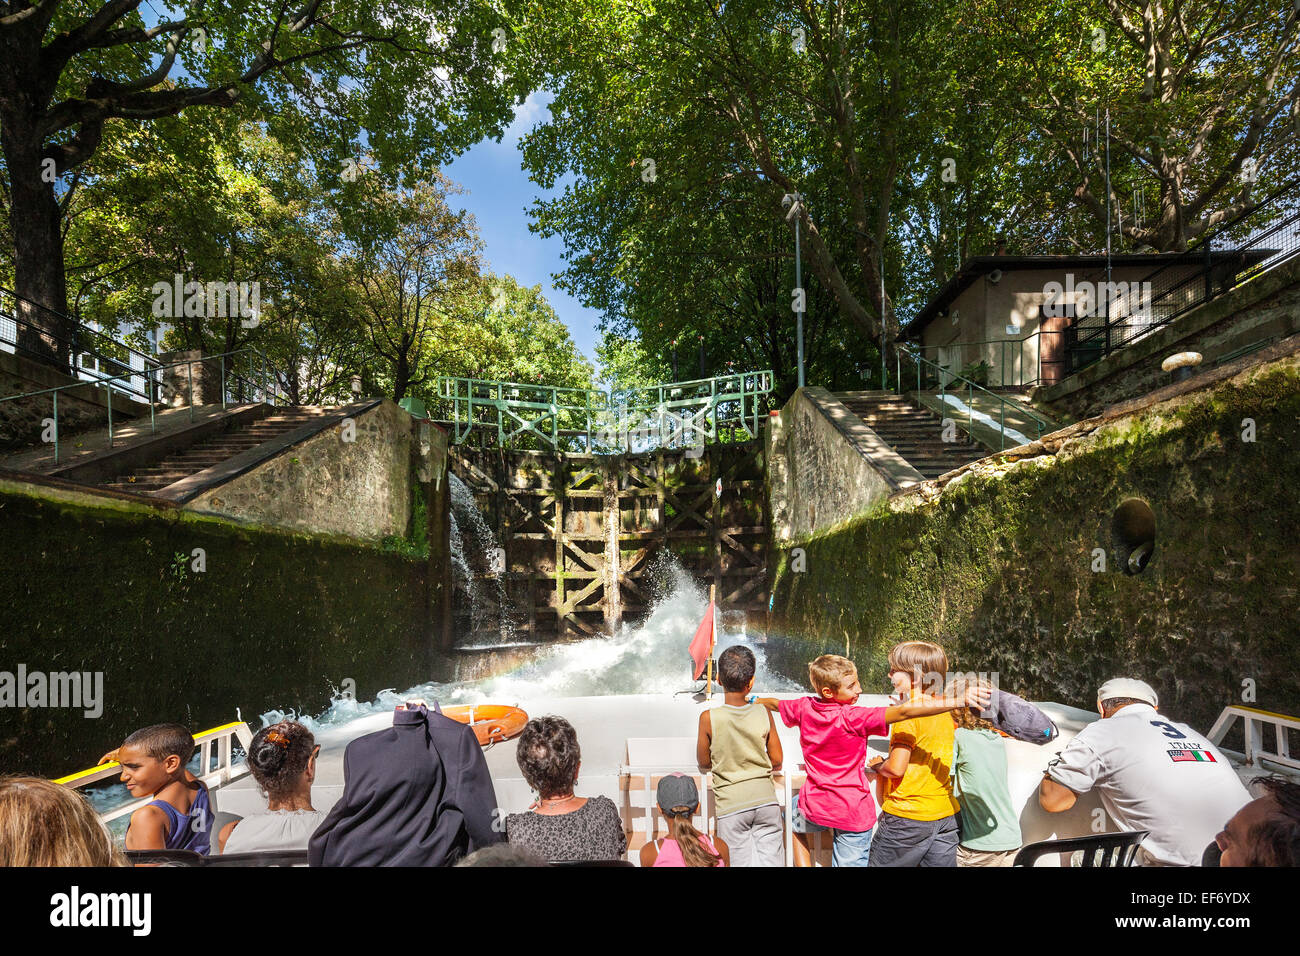 Canal Saint Martin Paris. A tourist canal cruise boat in a lock with family, children watching, enjoying the water - Stock Image